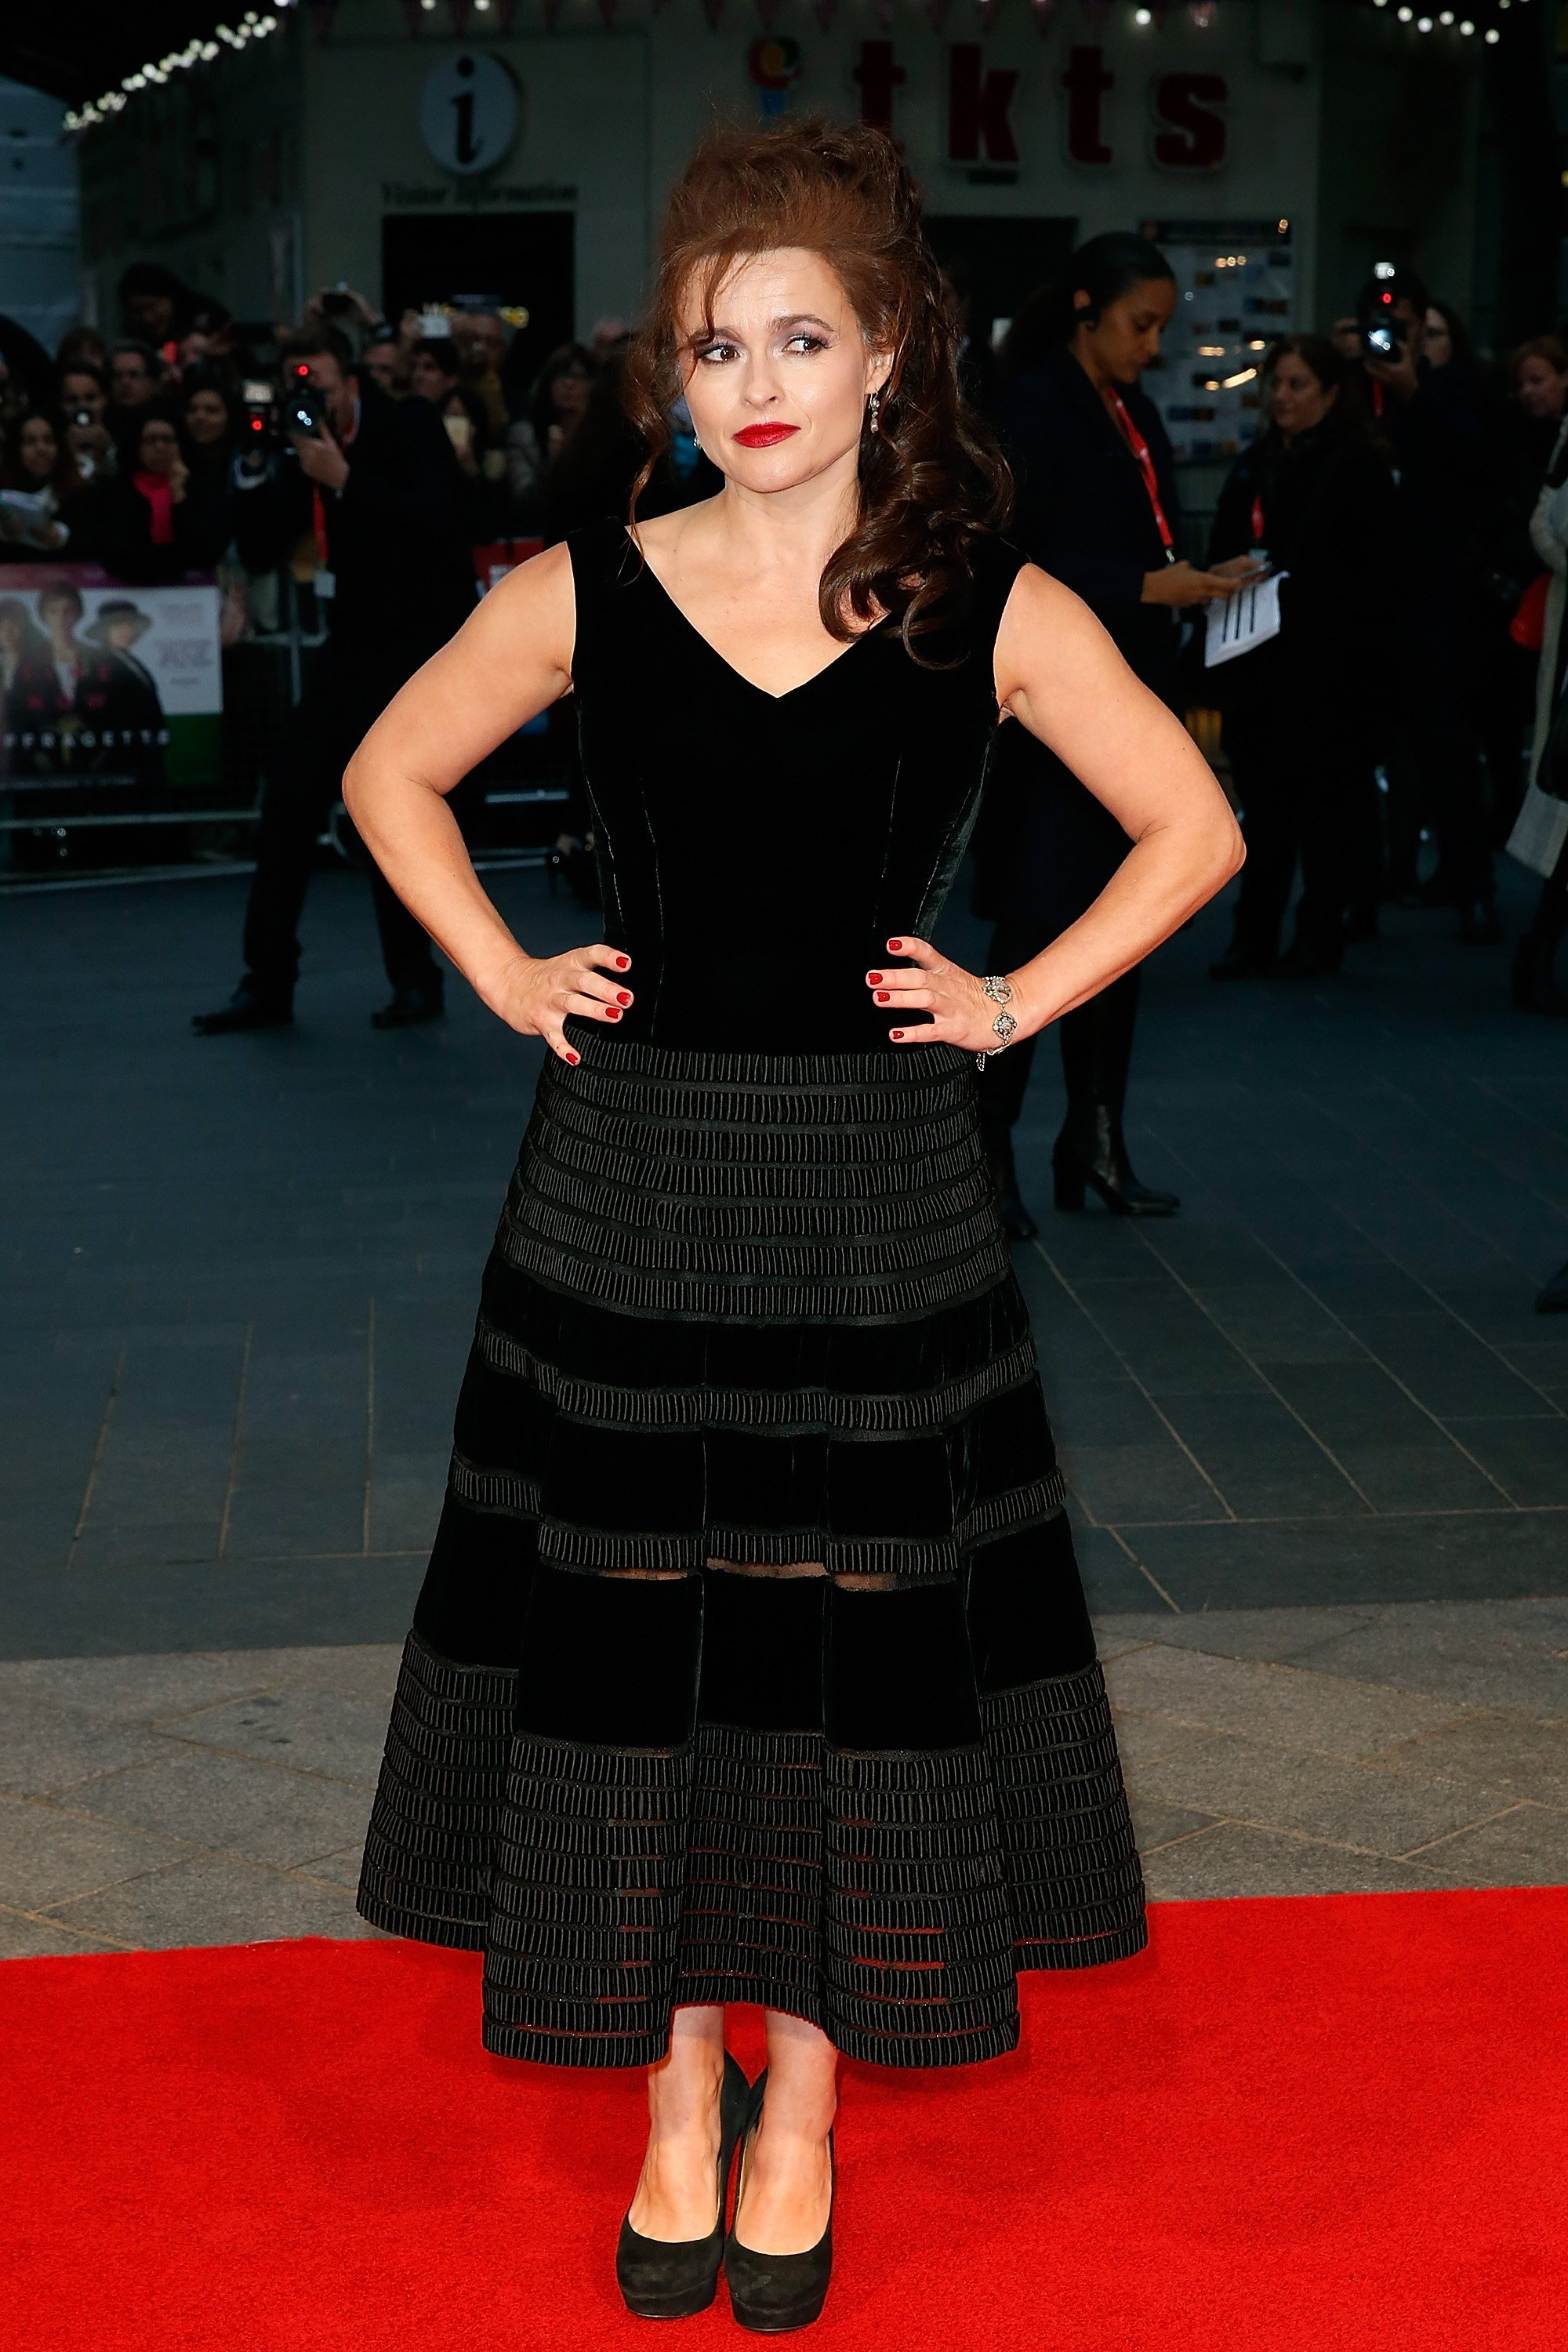 """Helena Bonham Carter attends the premiere of """"Suffragette"""" in London, England on October 7, 2015 